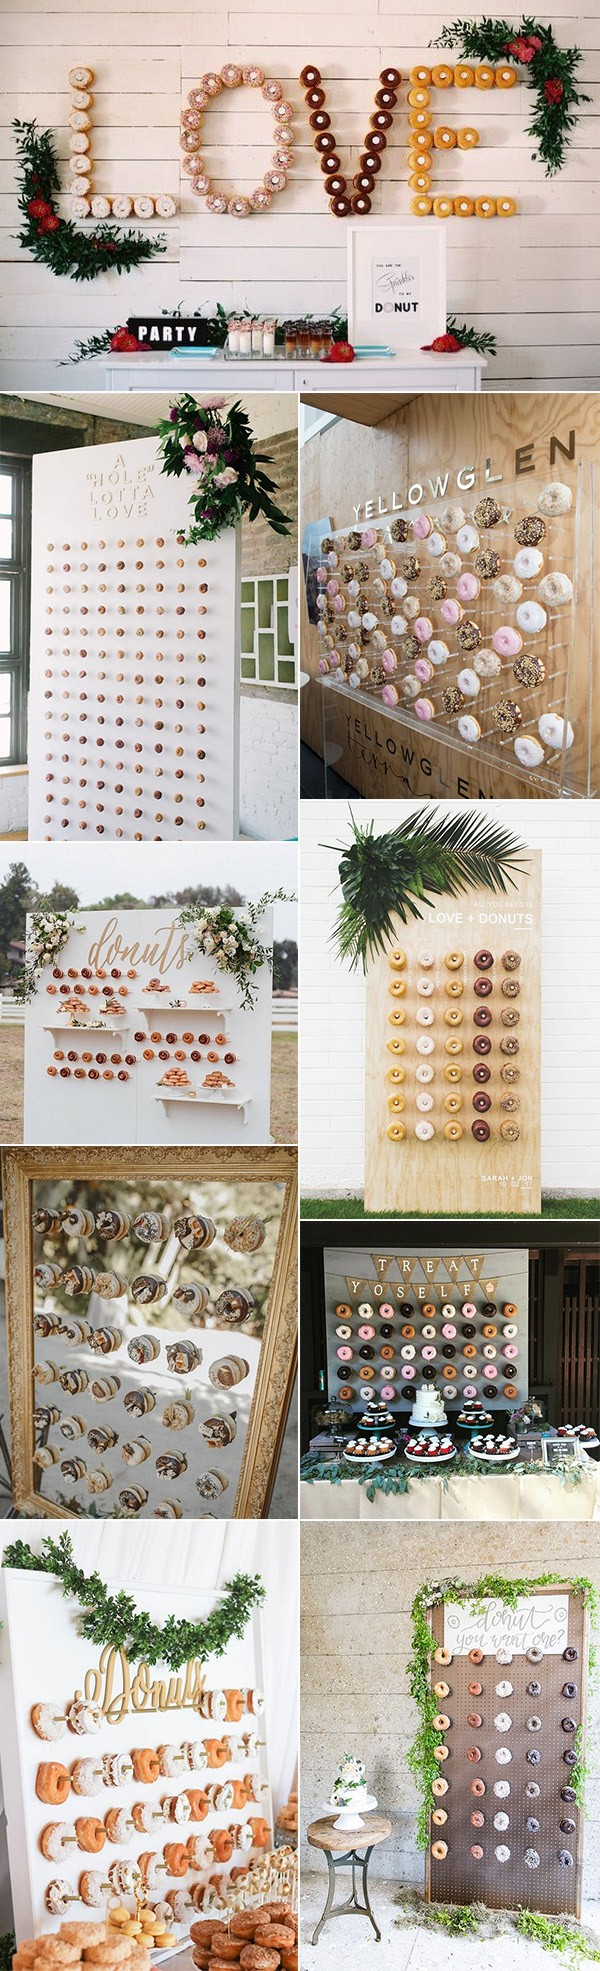 chic wedding donuts walls for reception ideas